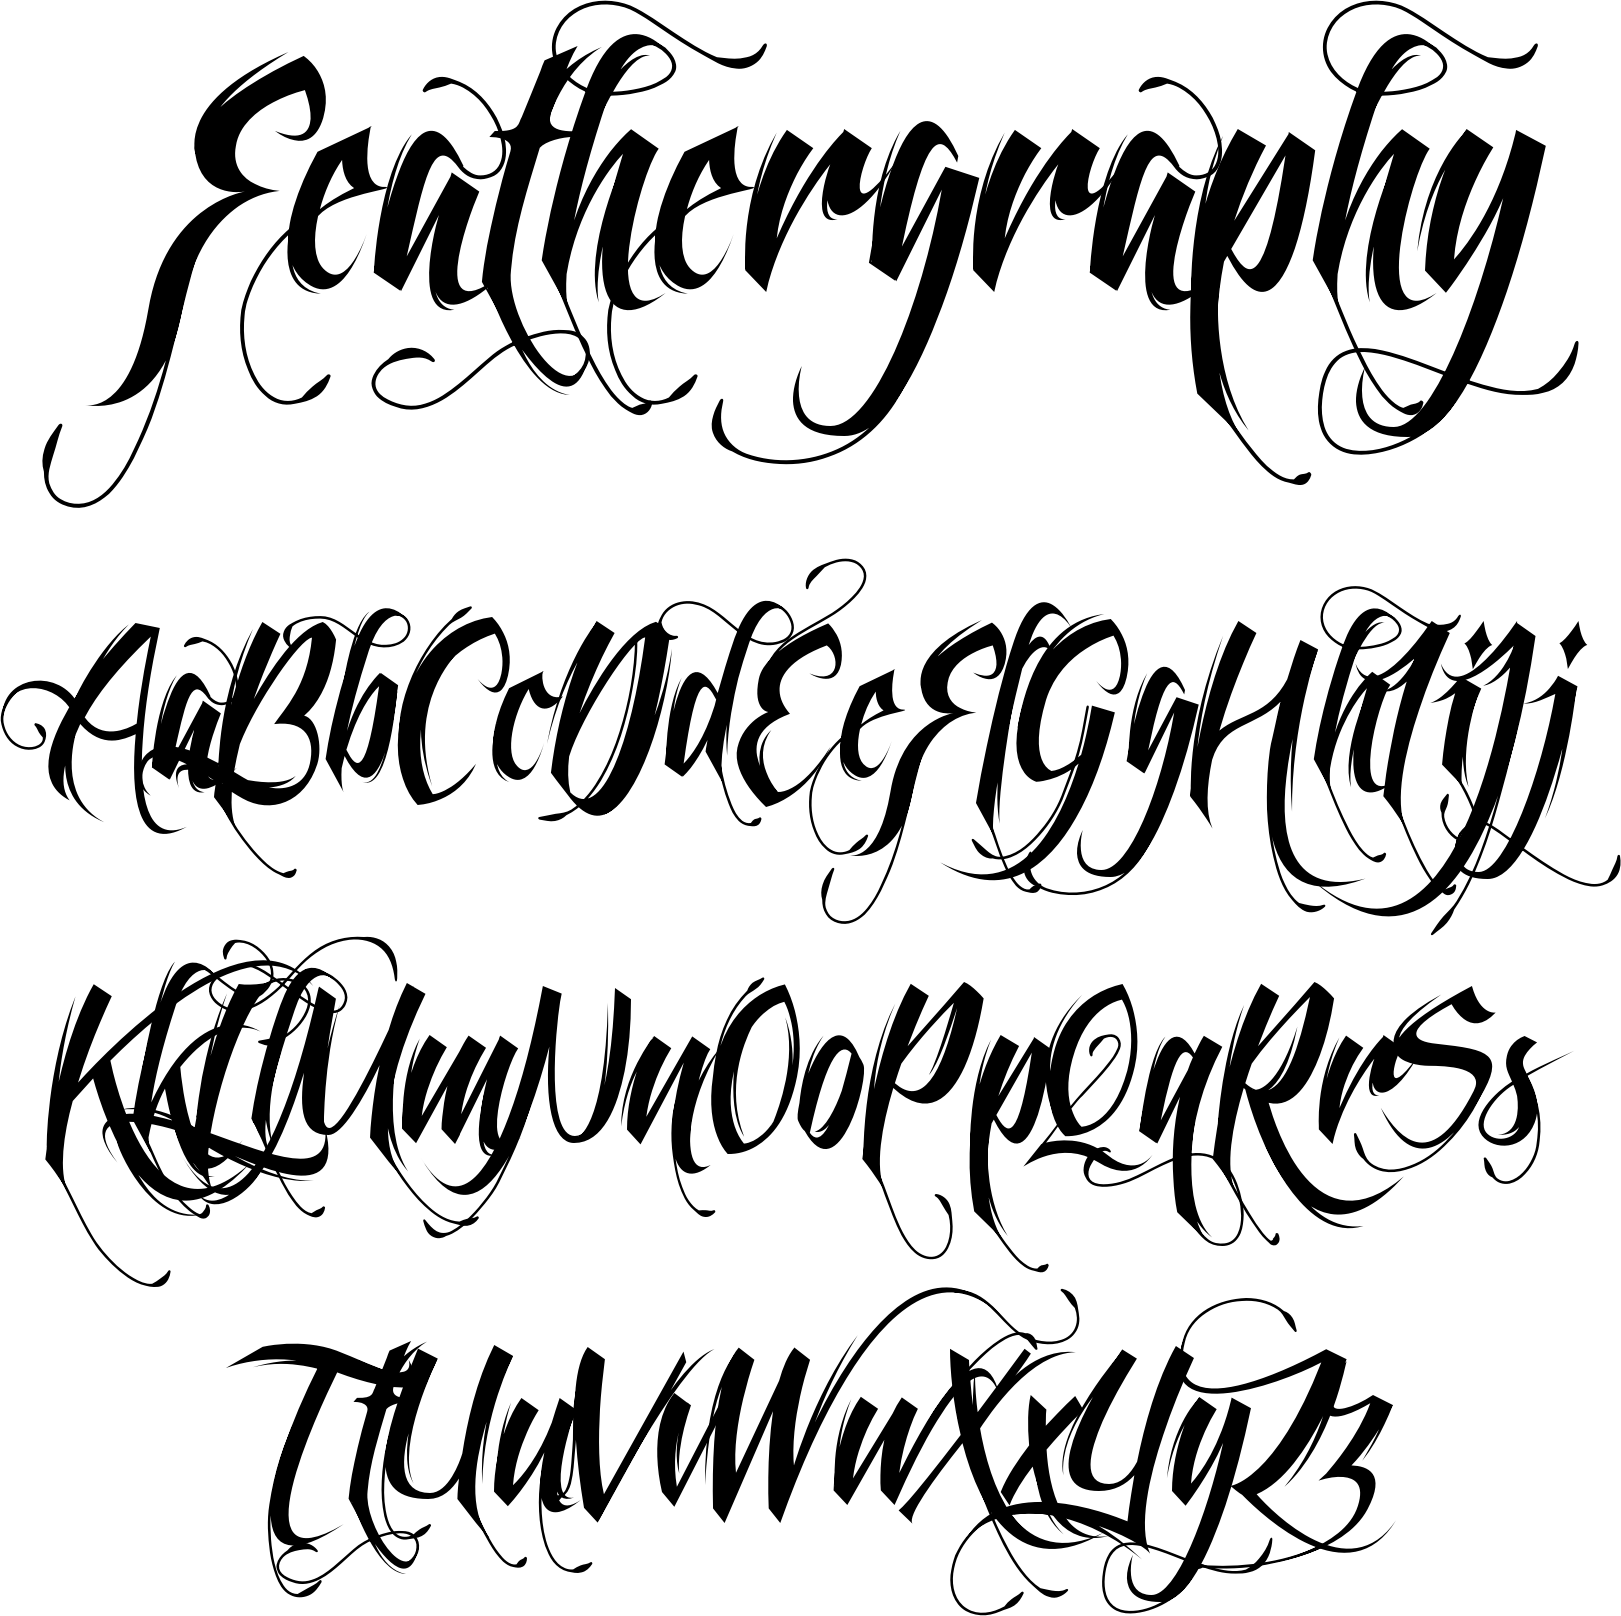 My font for my stay strong tattoo.